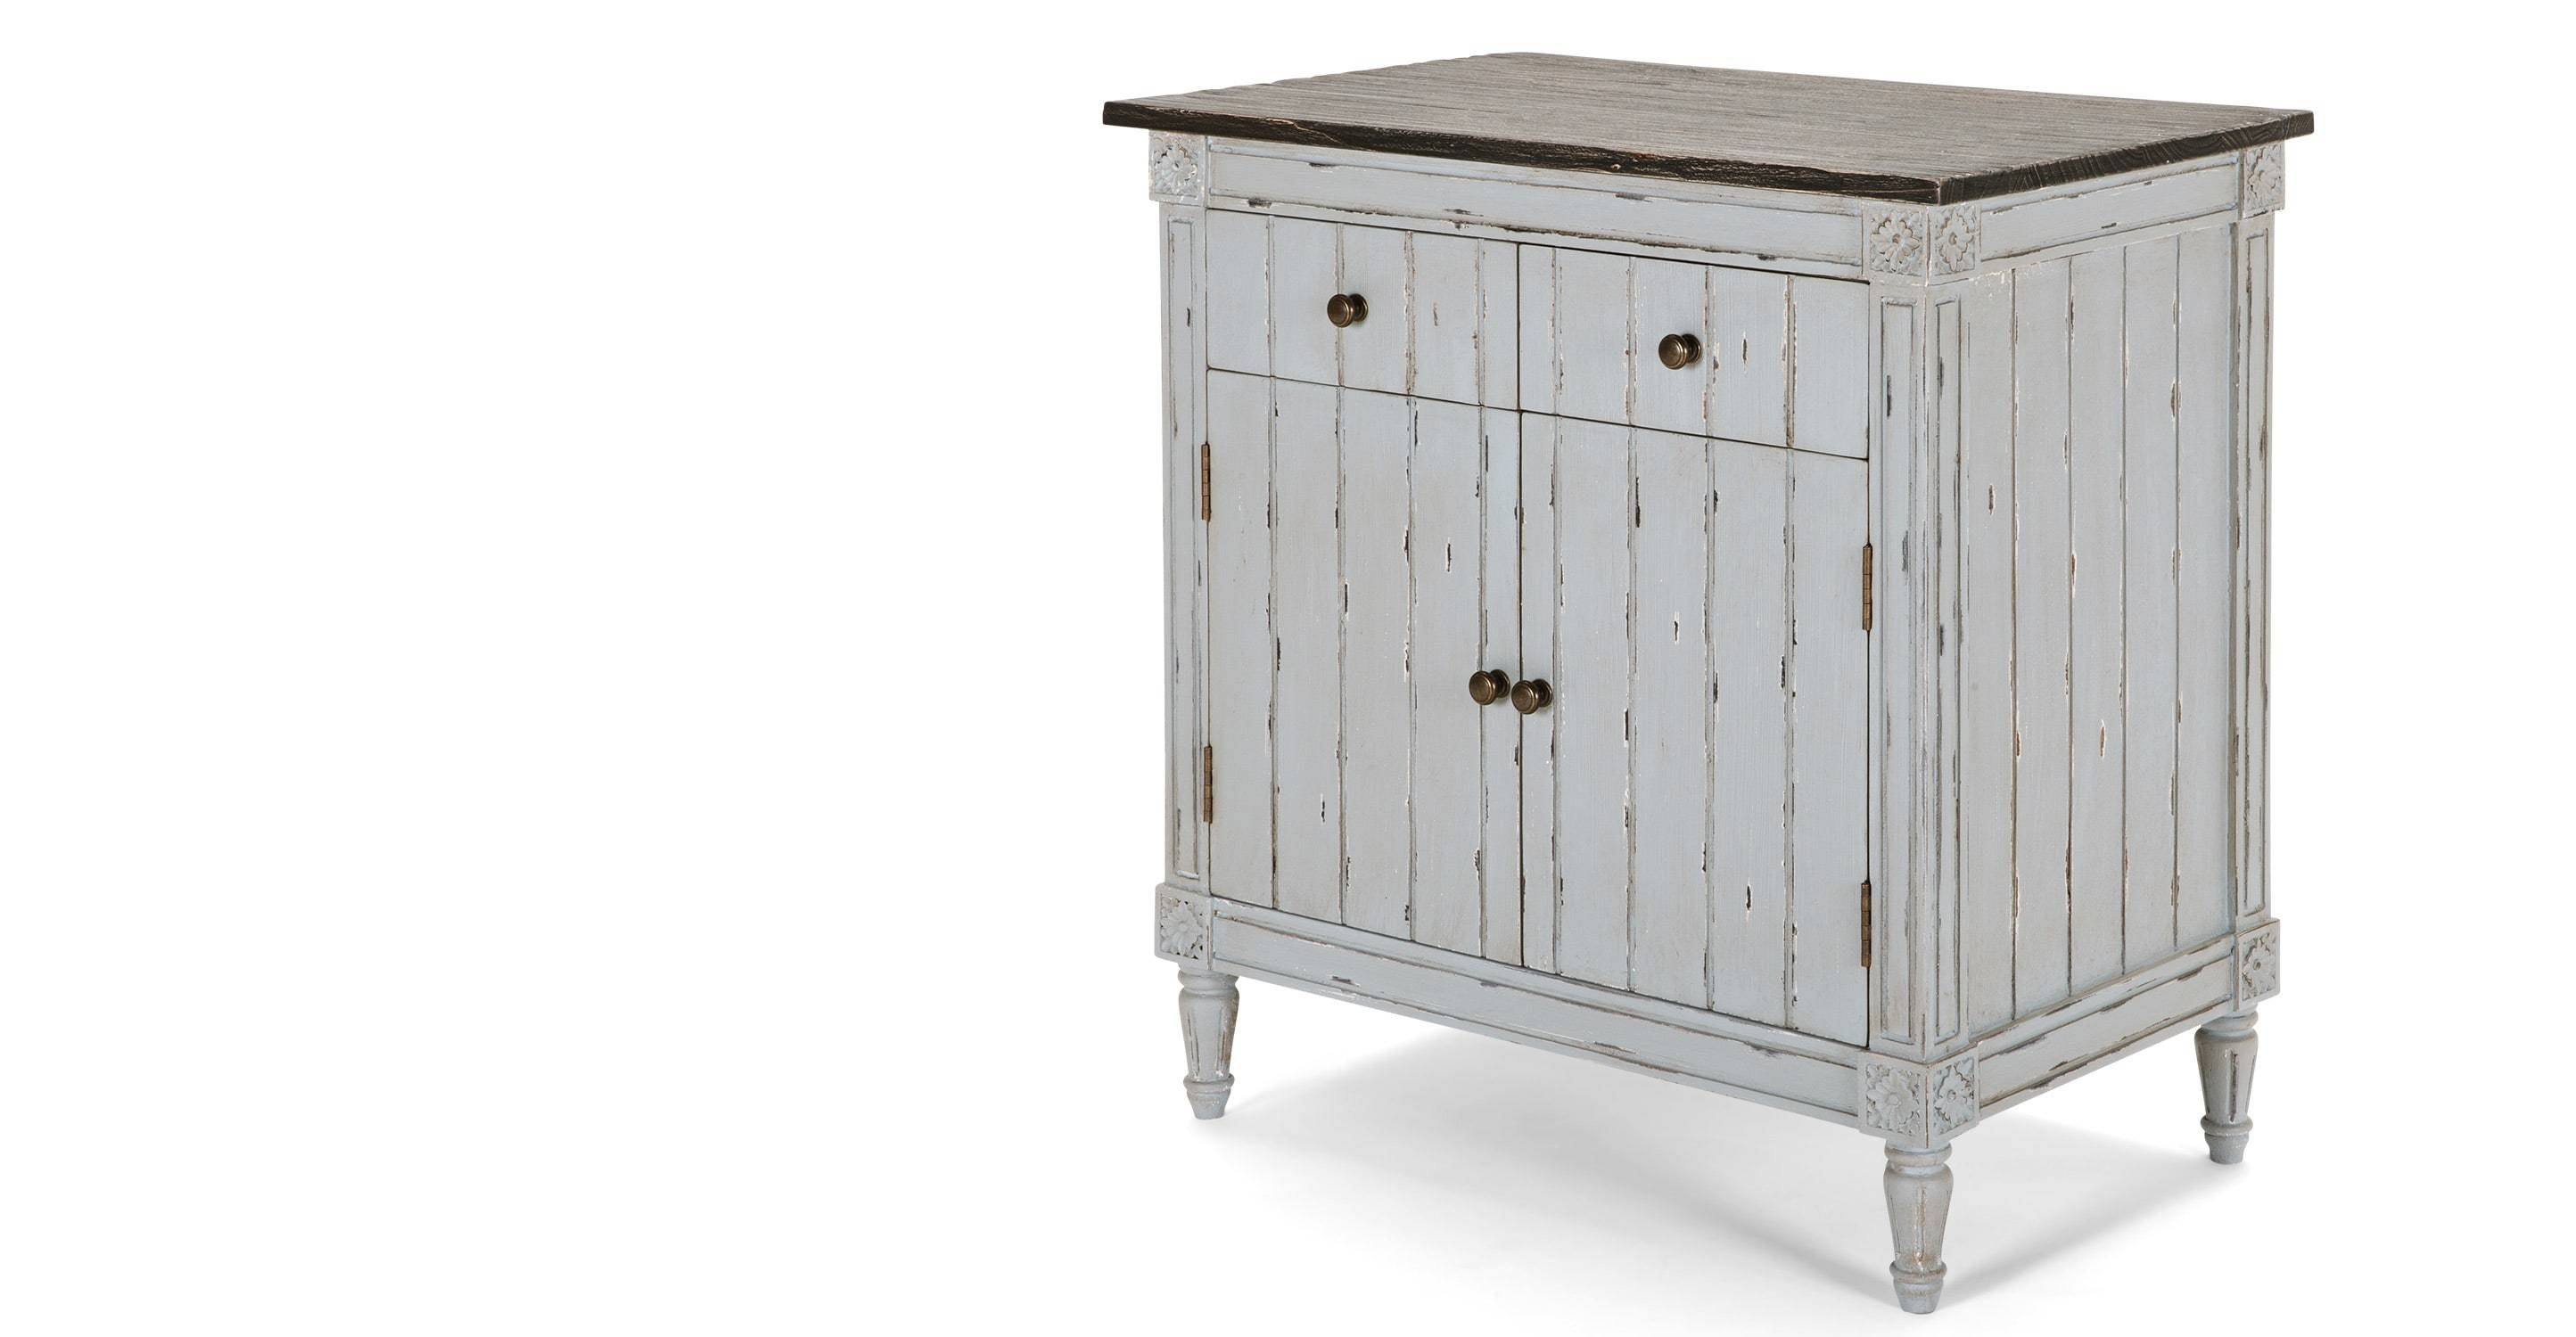 New Sideboard Buffet Server - Bjdgjy within Distressed Sideboards (Image 7 of 15)